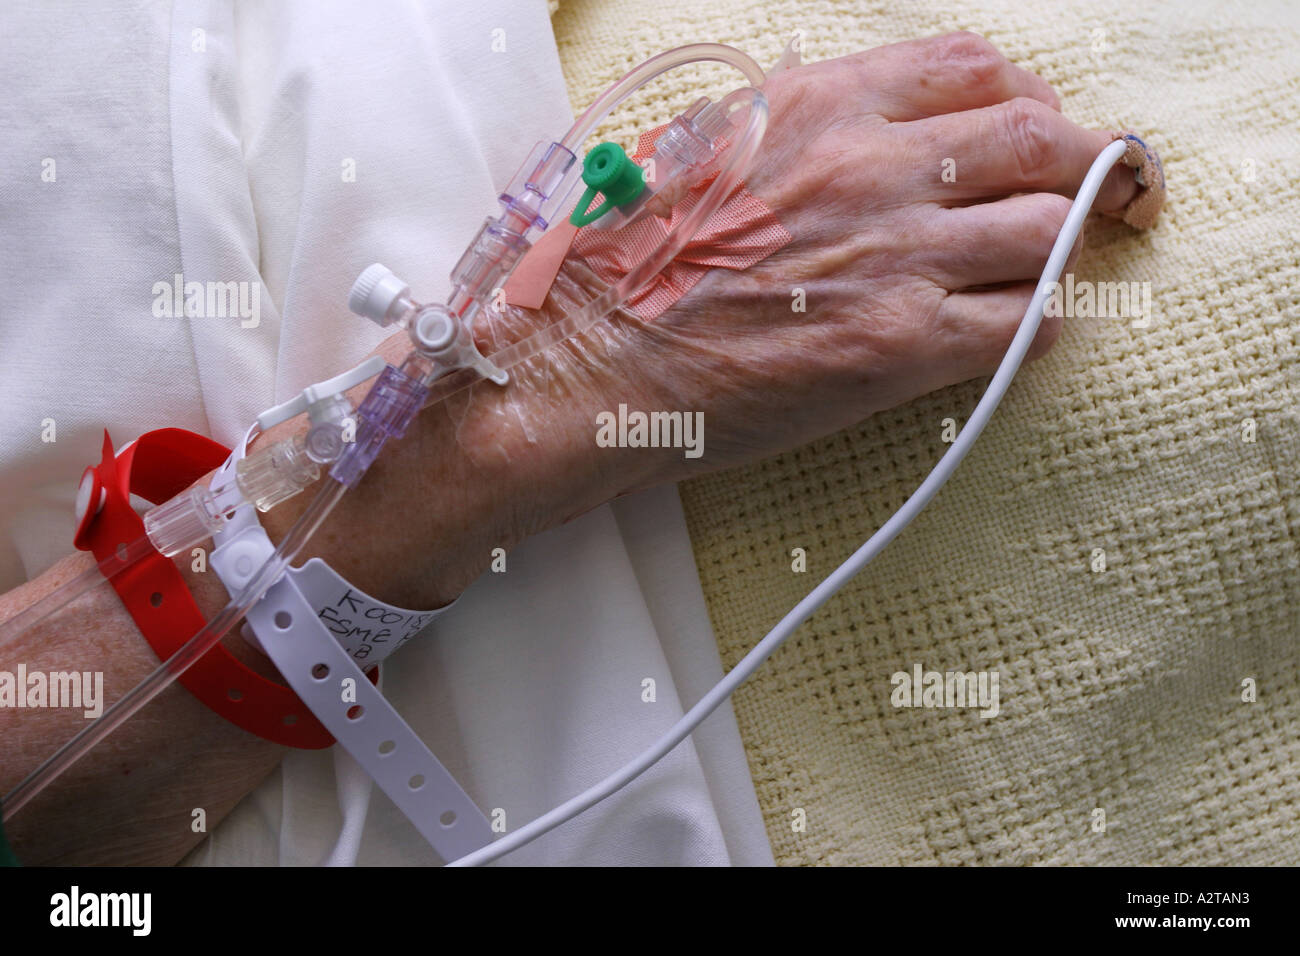 An elderly female patient's hand prepared for surgery at the Royal Brompton hospital, London, 2005. - Stock Image